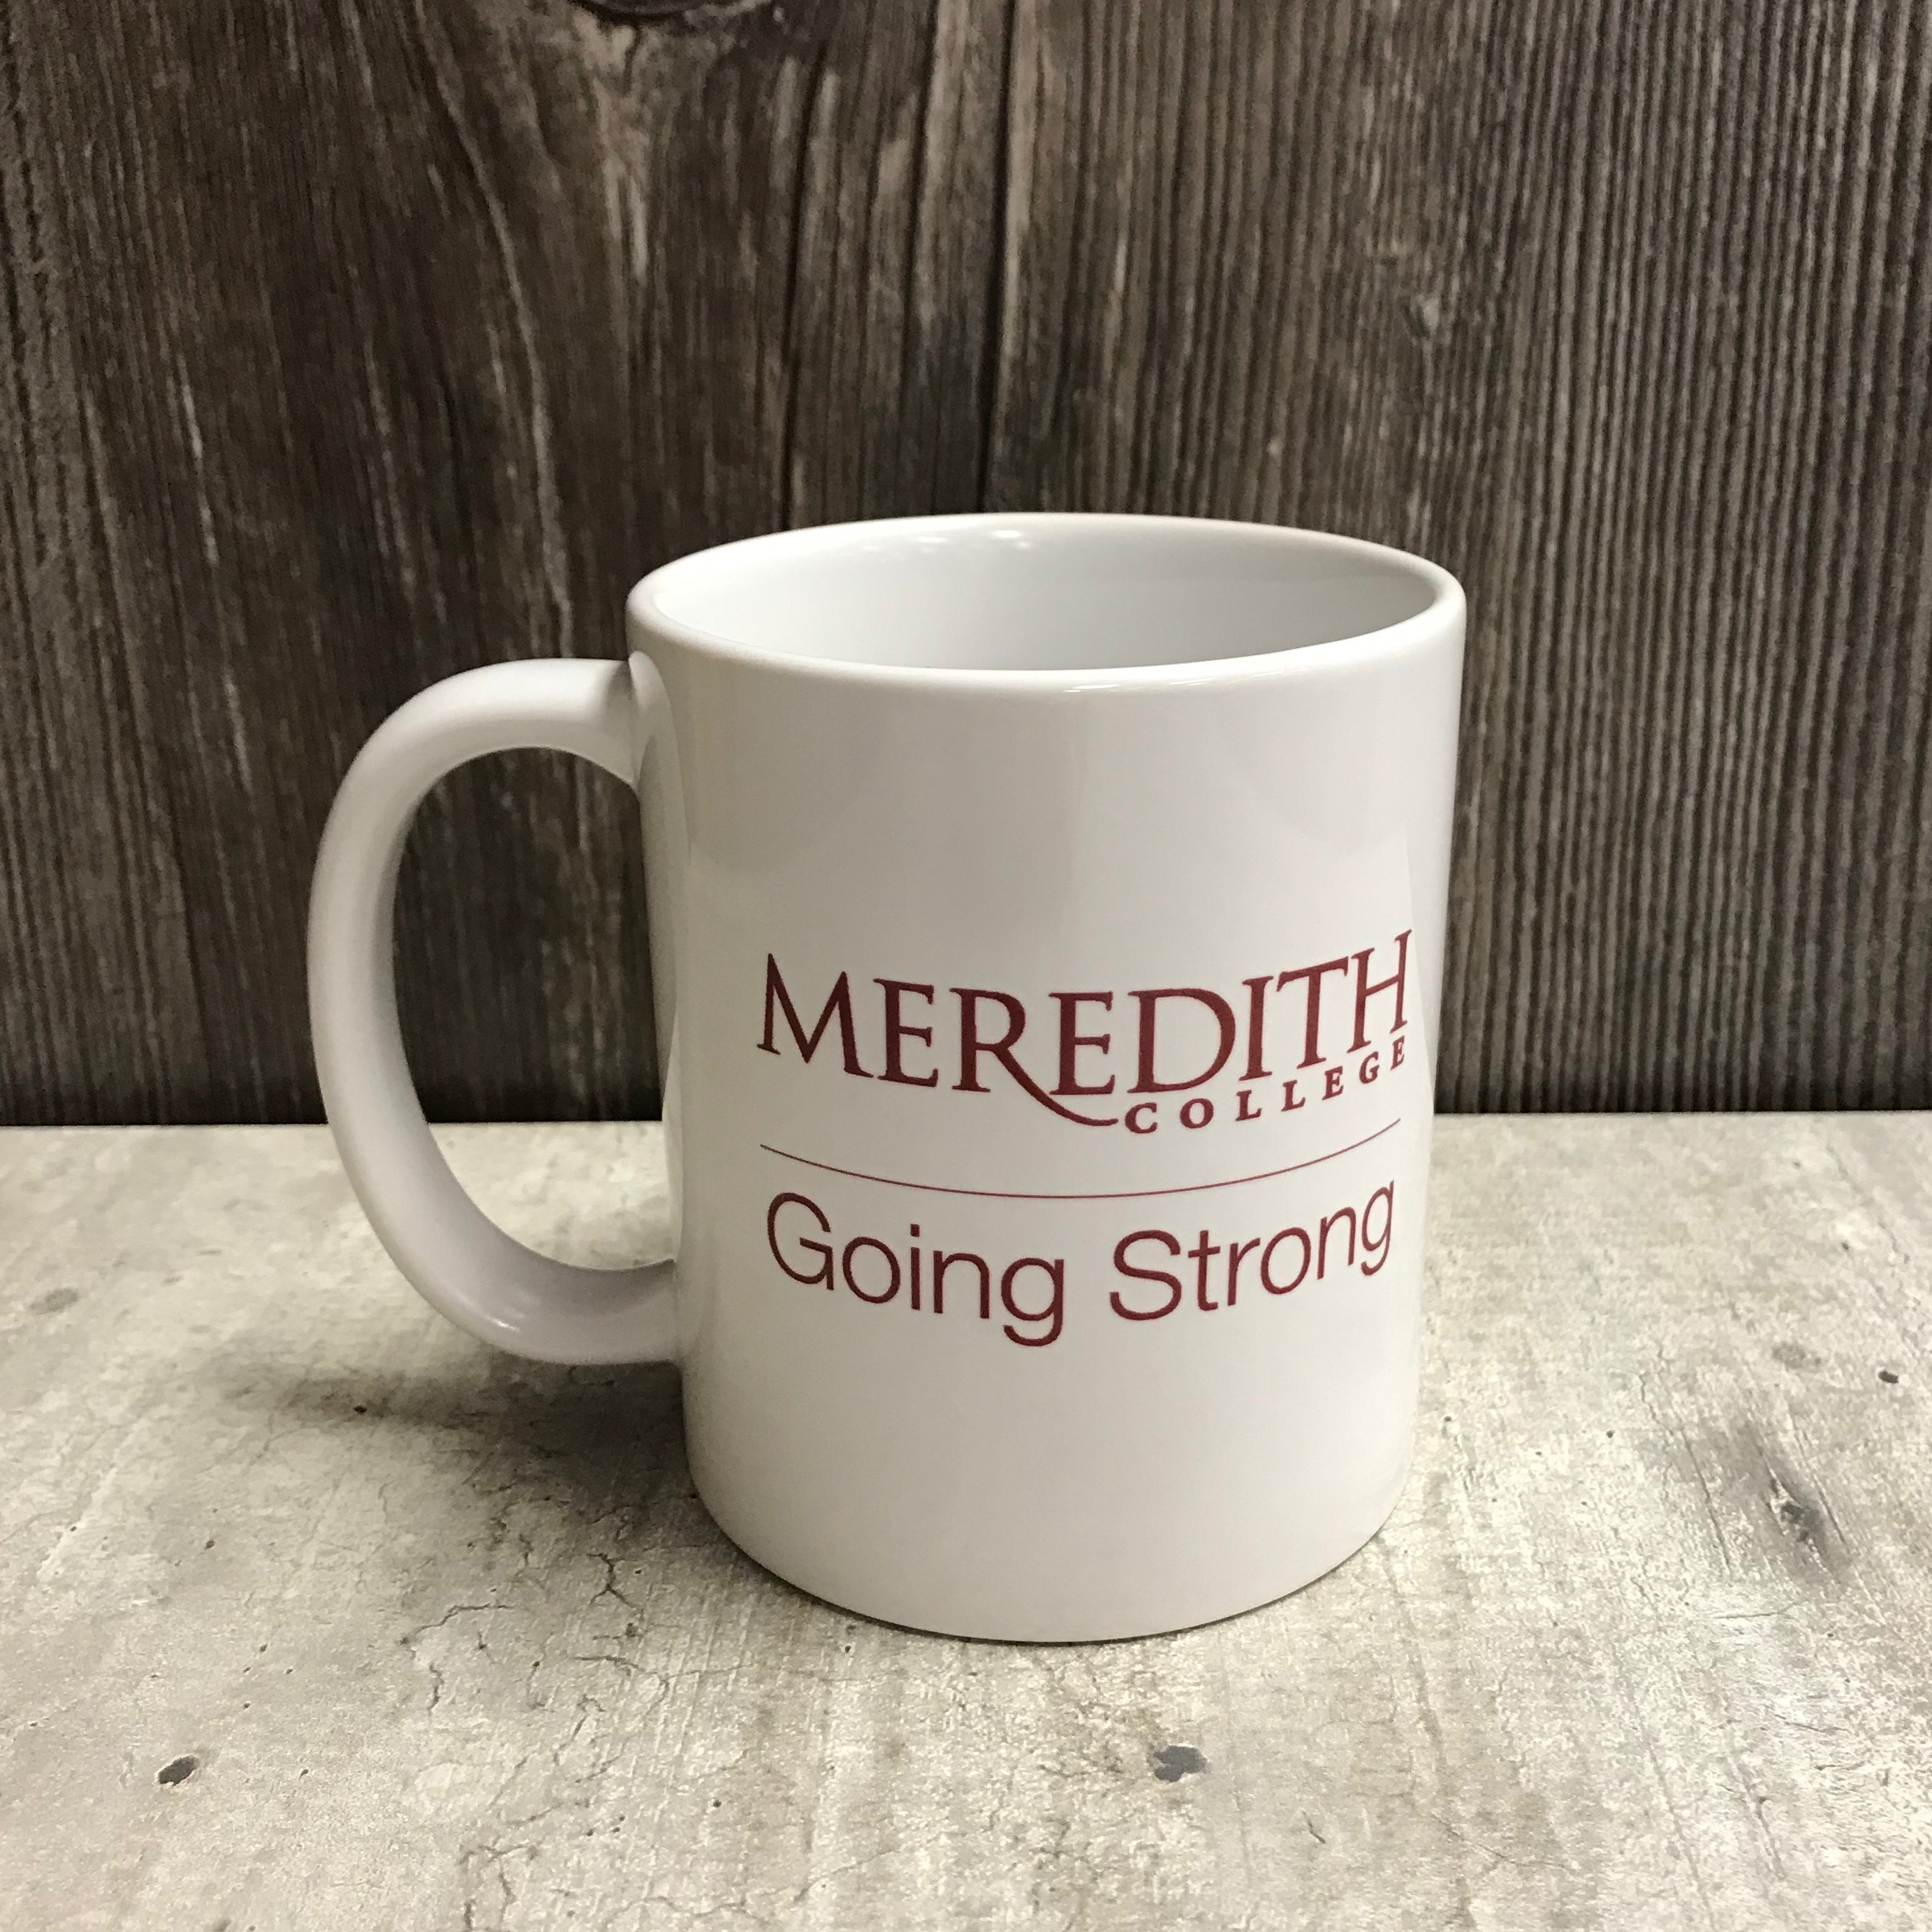 Image for the White Mug, Meredith College Going Strong product